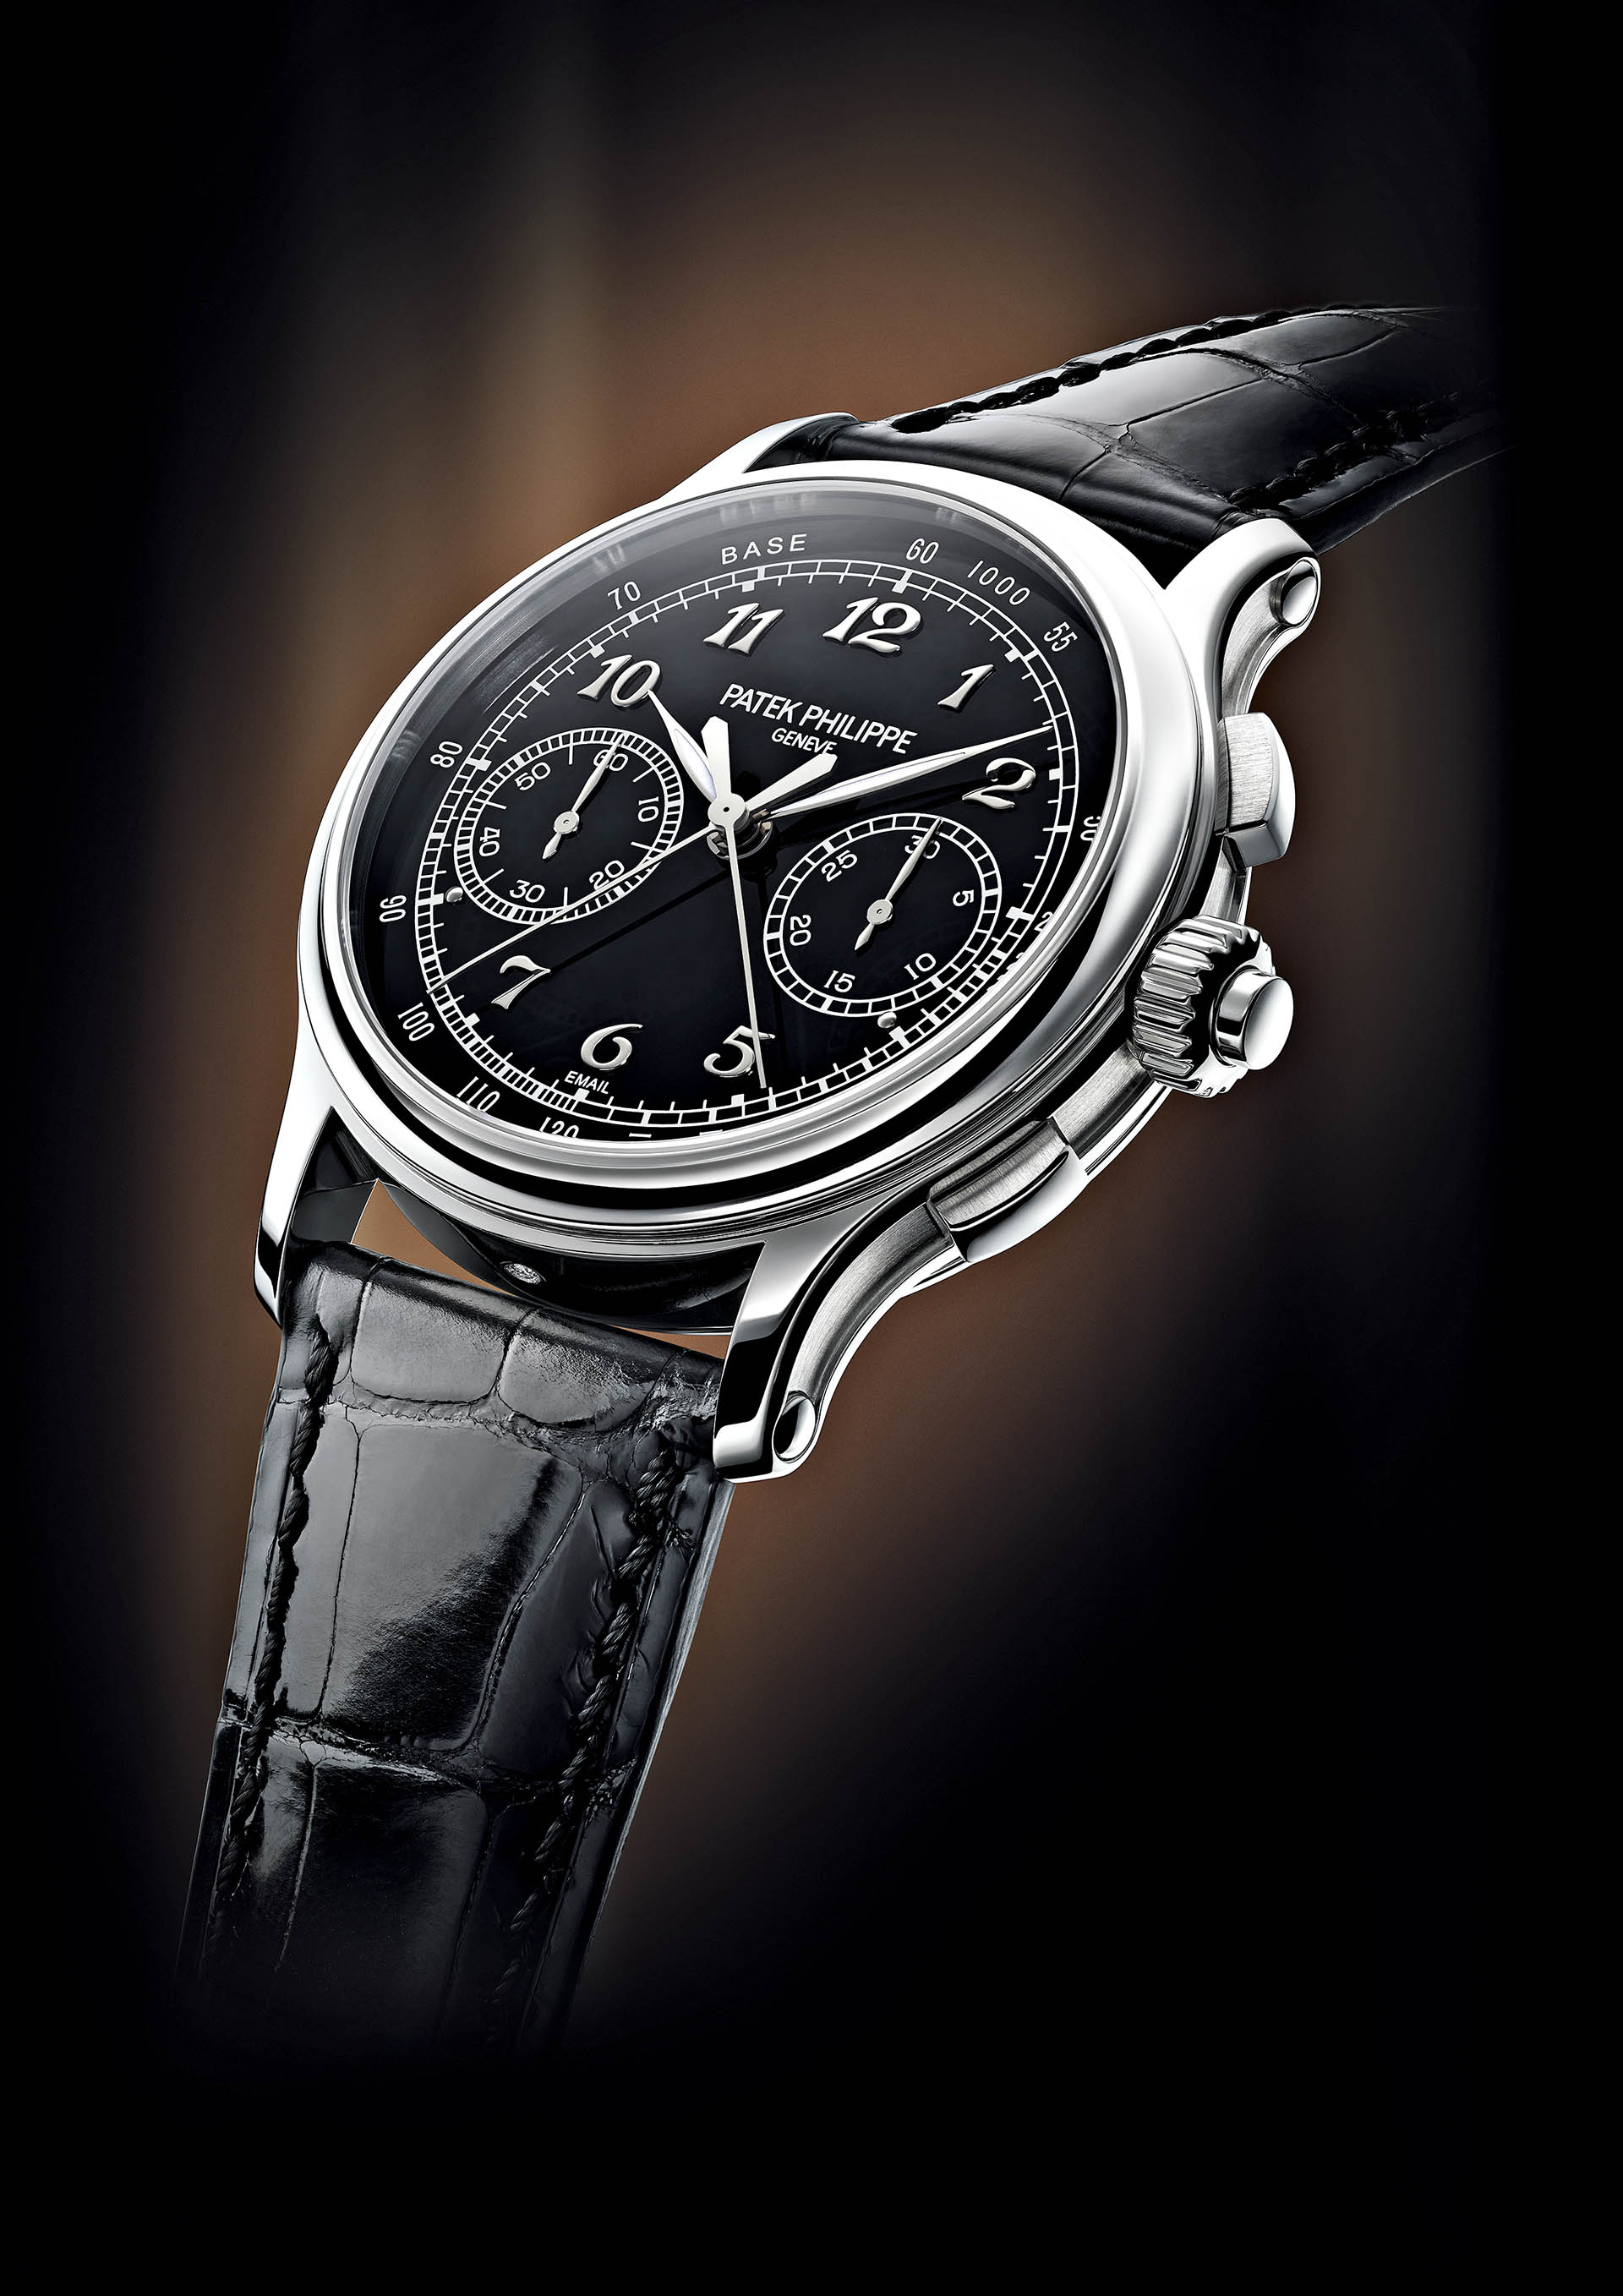 Patek Philippe Schleppzeiger-Chronograph Rattrapante